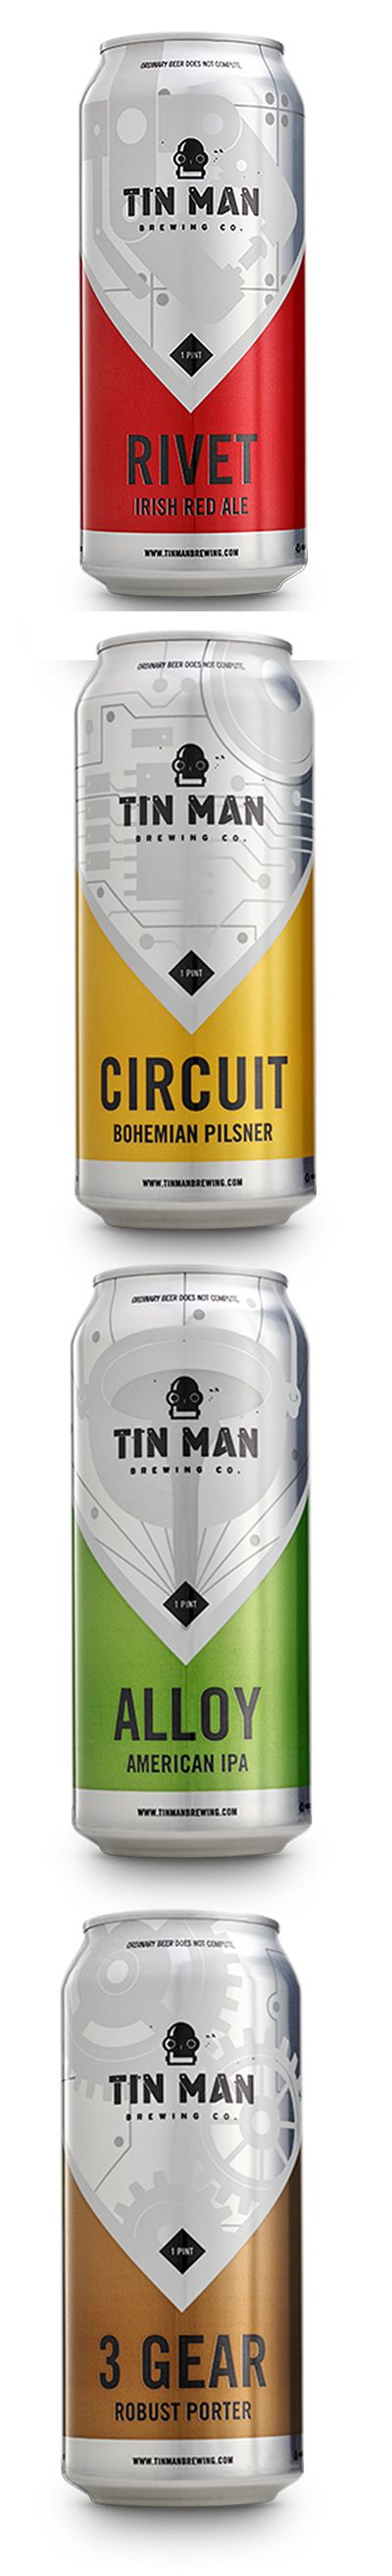 Tin Man Brewing Company's beer metal tin with beautiful shrink sleeve label designs. #etiquette #bouteille #shrink #sleeves #bottle #labels